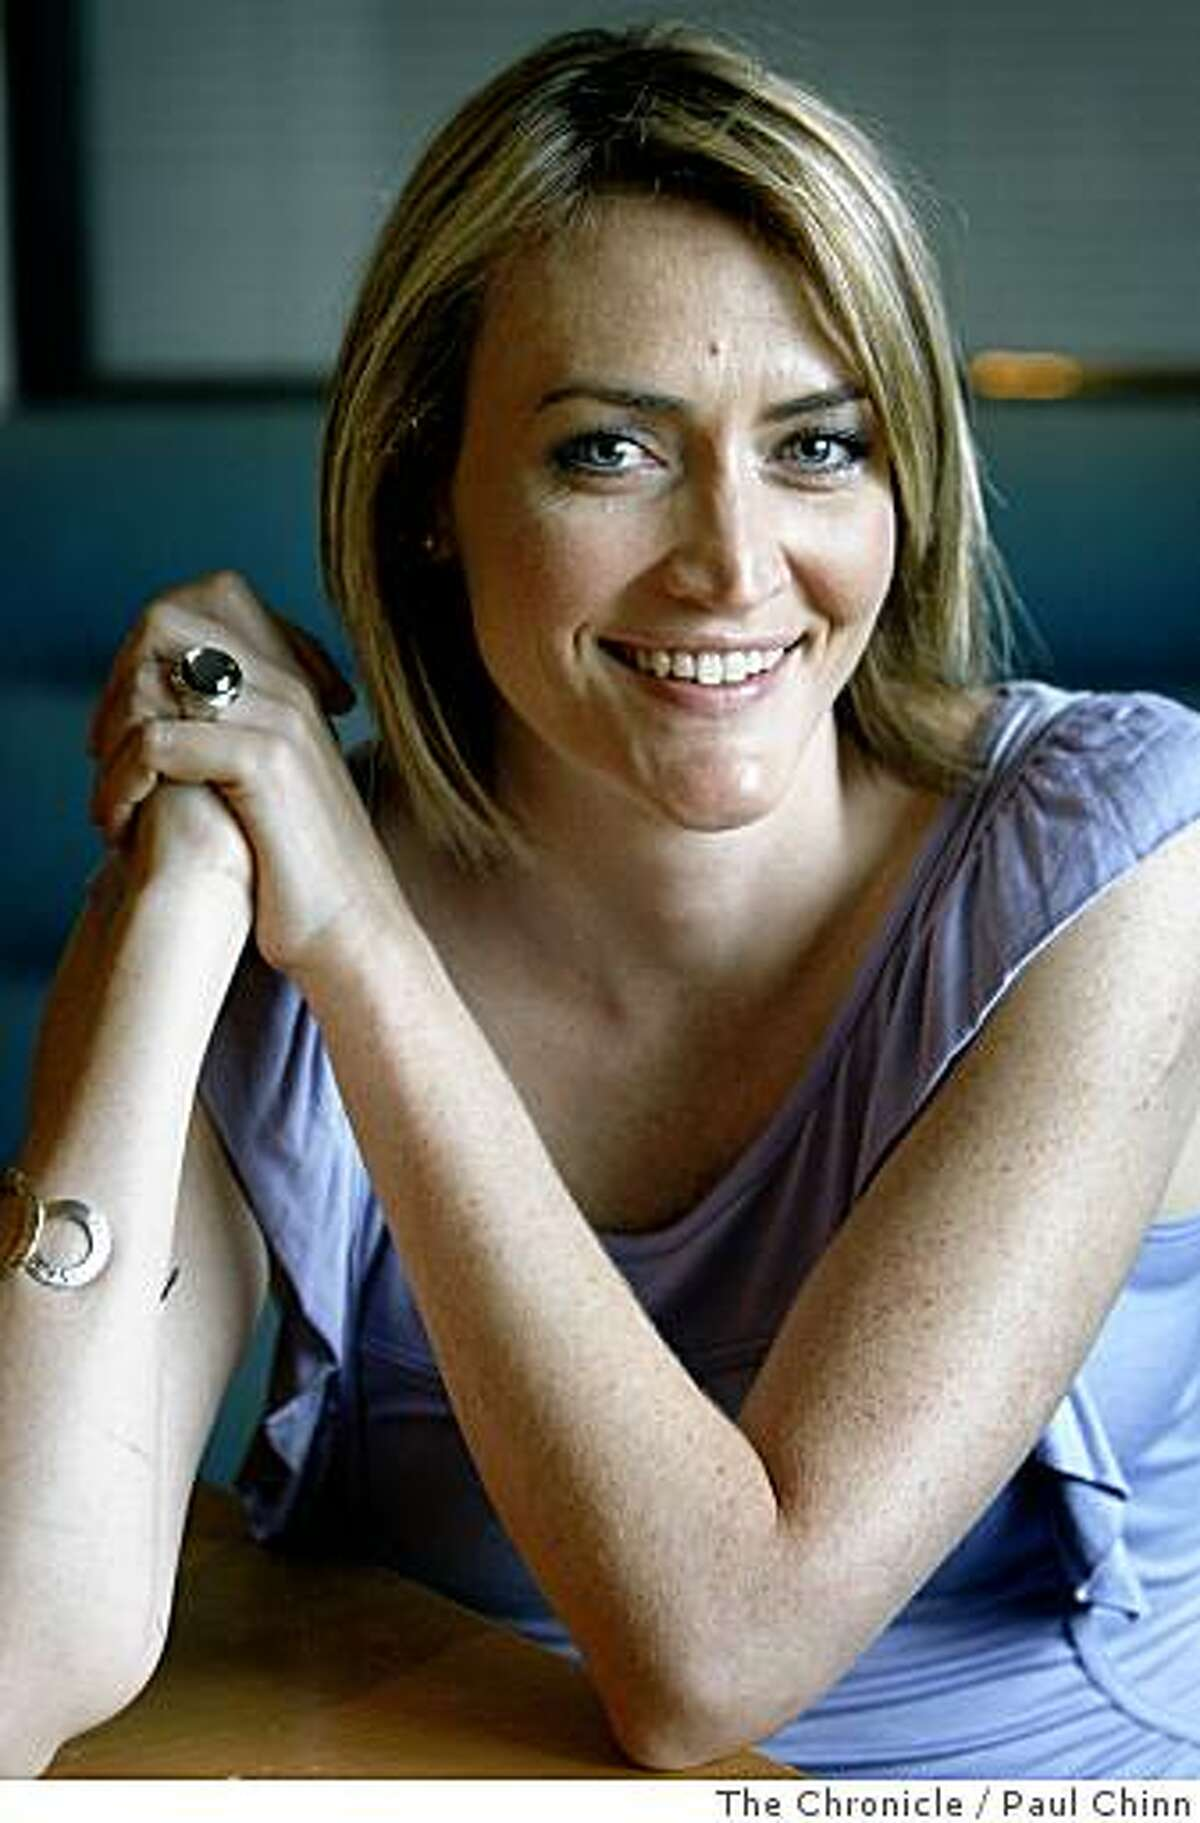 Heather Armstrong talks about her career as a professional blogger during an interview in San Francisco, Calif., on Friday, July 18, 2008. Armstrong's website, which gets about 4 million hits a month, chronicles her daily life, much of it surrounding her four-year-old daughter Leta.Photo by Paul Chinn / The Chronicle